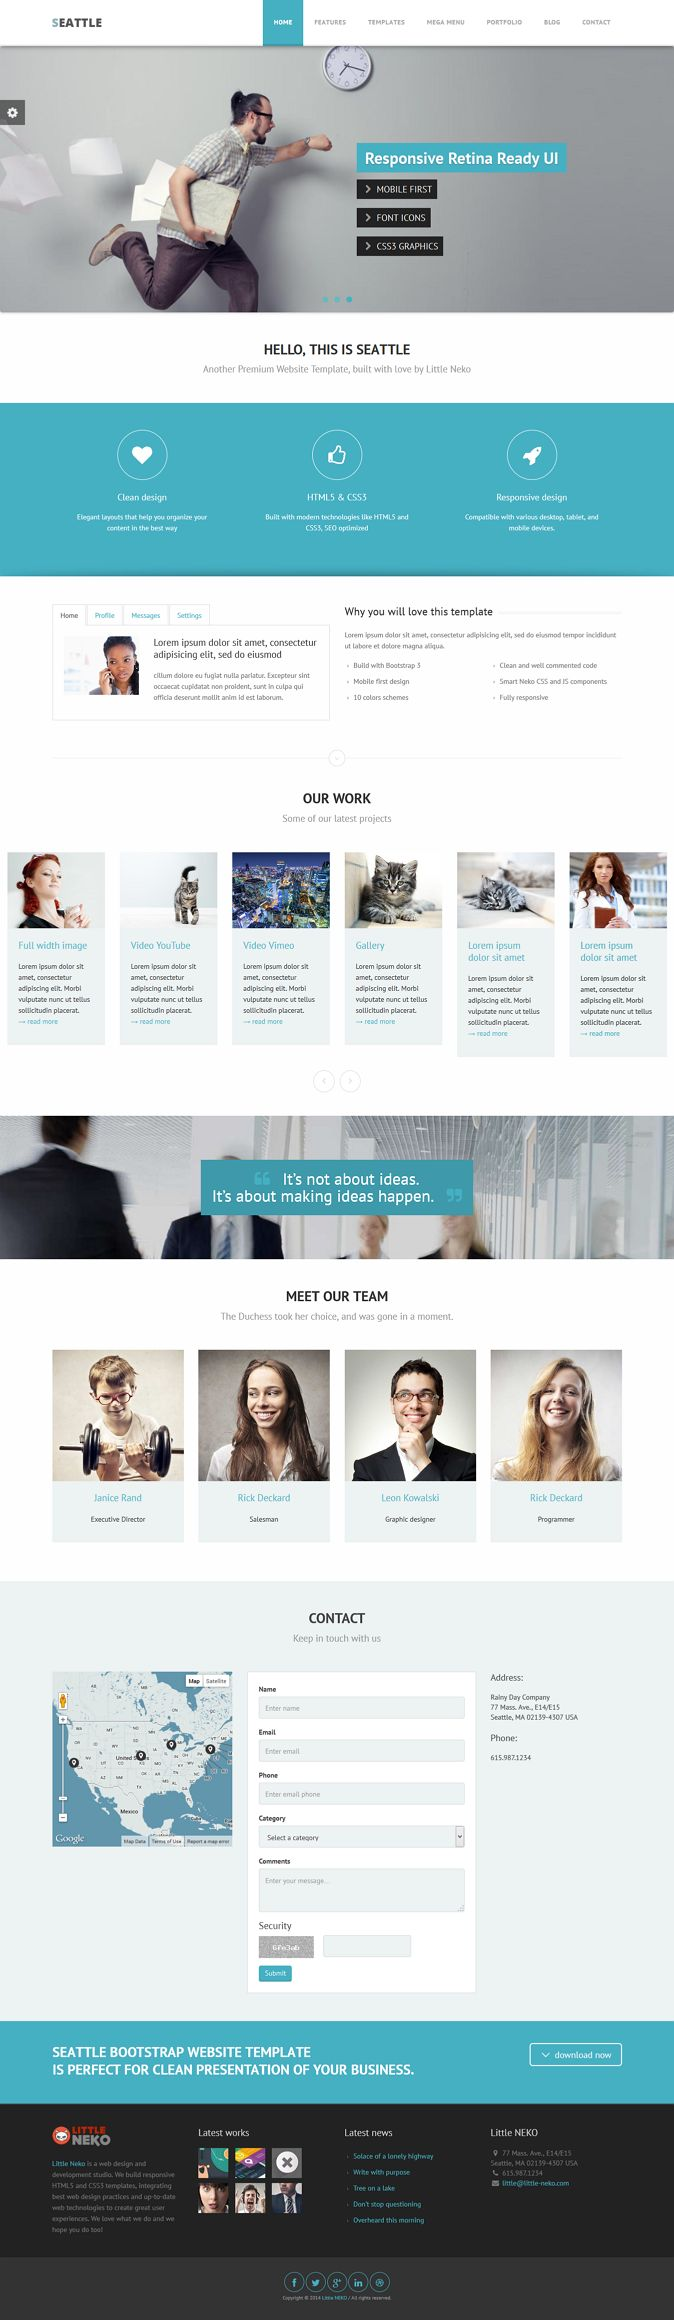 Seattle is a #Boostrap 3, clean, mobile first and easy to use premium multipurpose #website template. Seattle template is built with easy customization in mind. It comes with more than 30 page #templates, 10 color schemes.